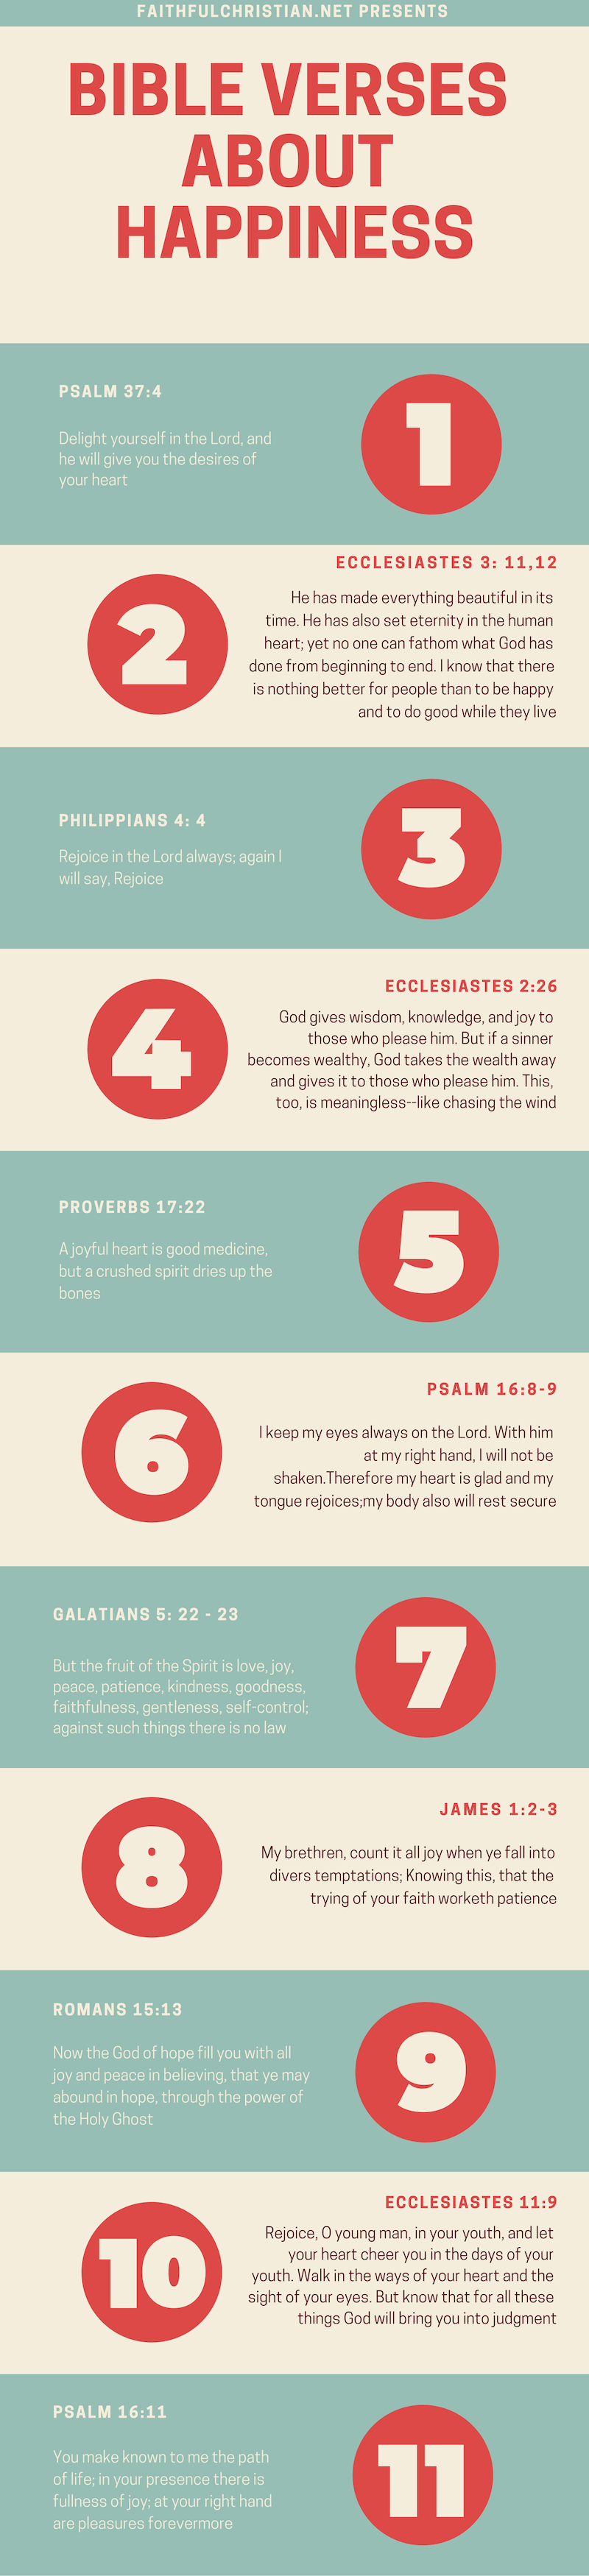 10 Bible Verses About Happiness & Joy - The Faithful Christian